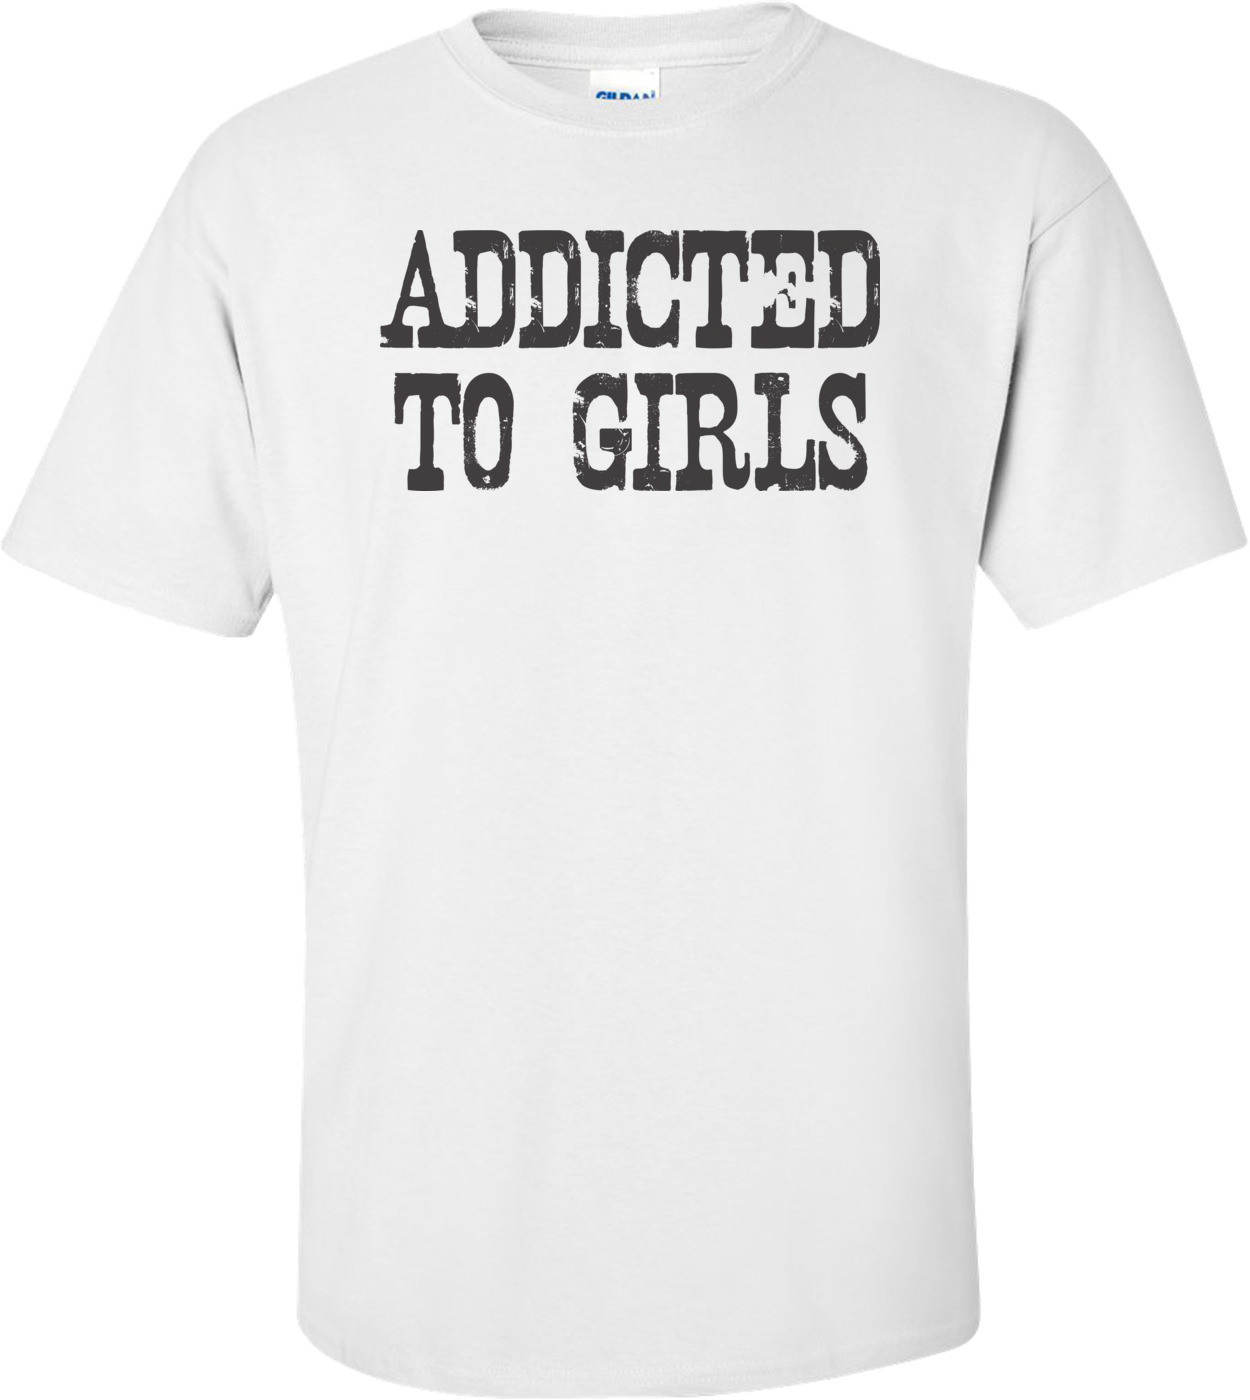 Addicted To Girls T-shirt